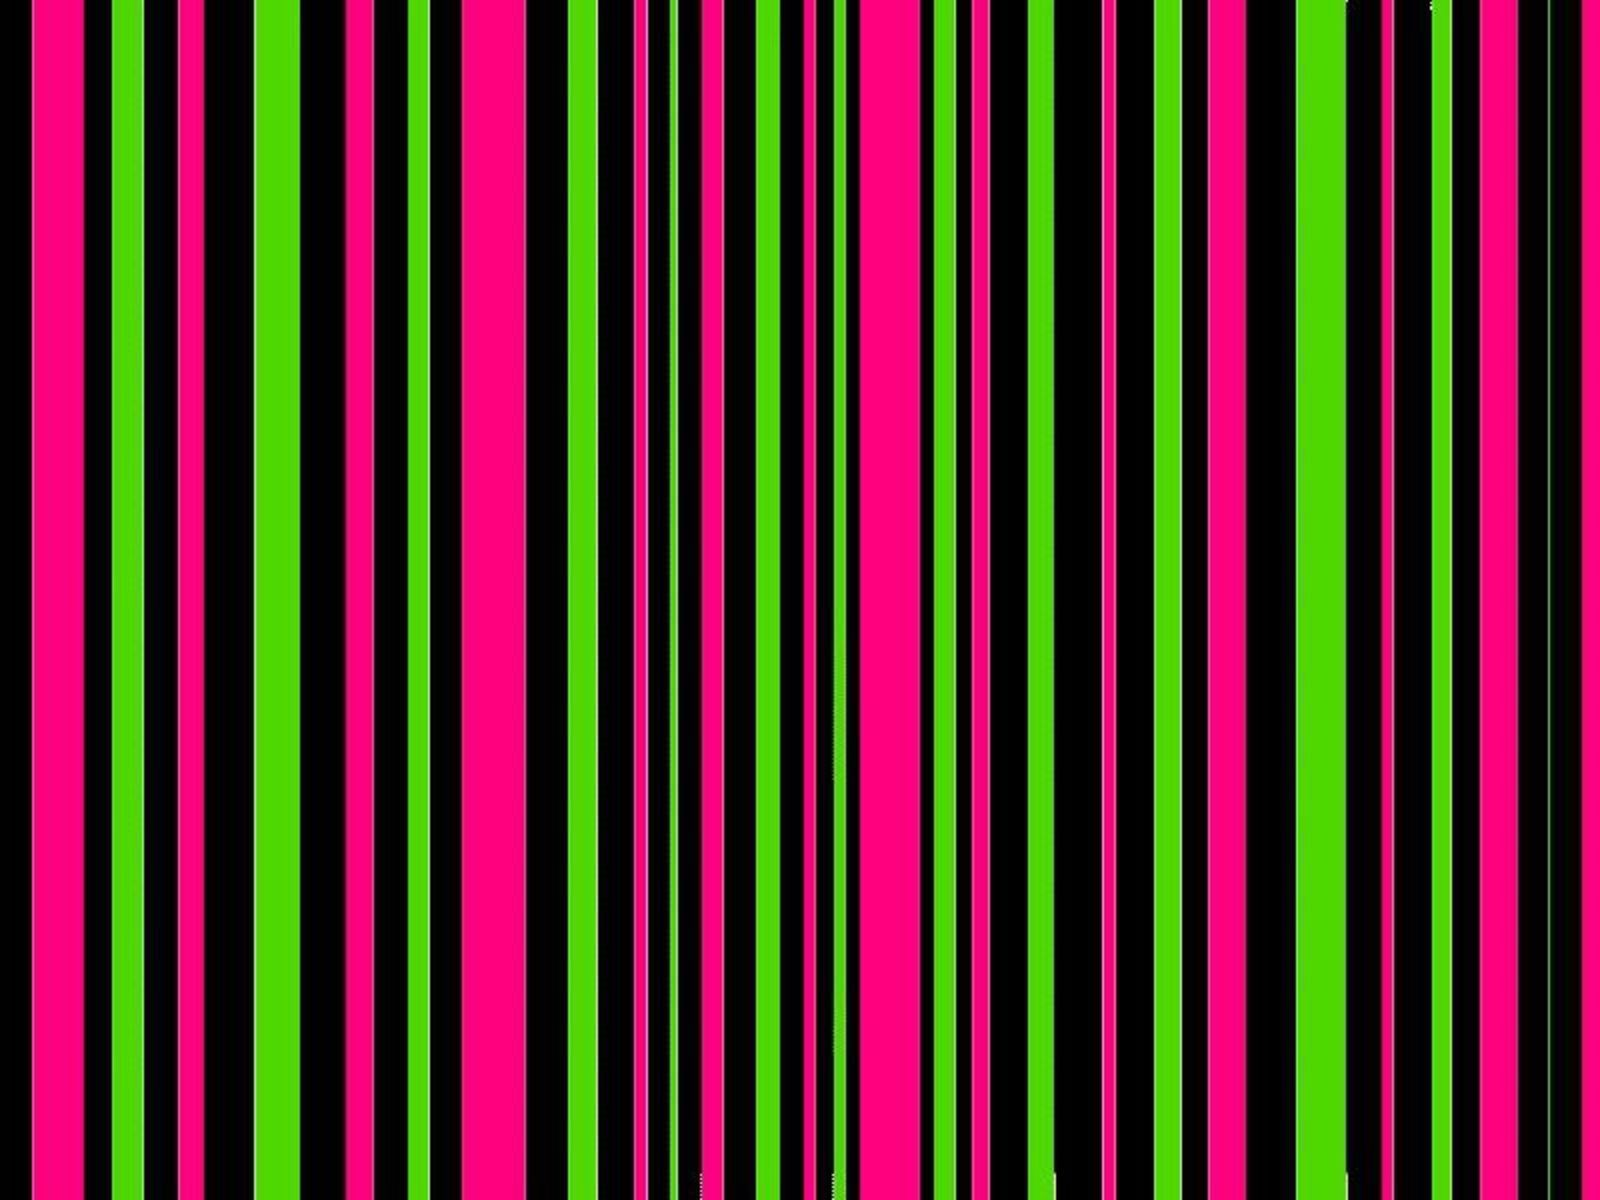 Neon stripes wallpaper Wallpaper Wide HD 1600x1200